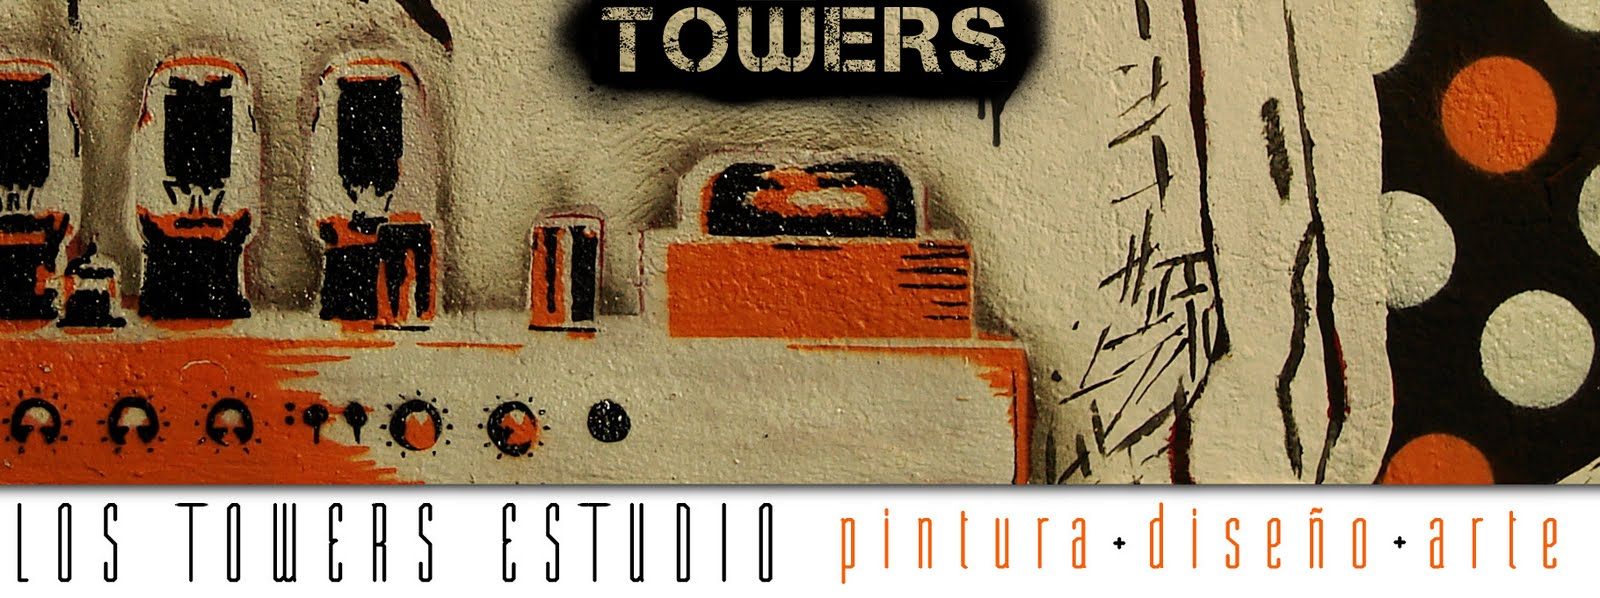 Los tower estudio